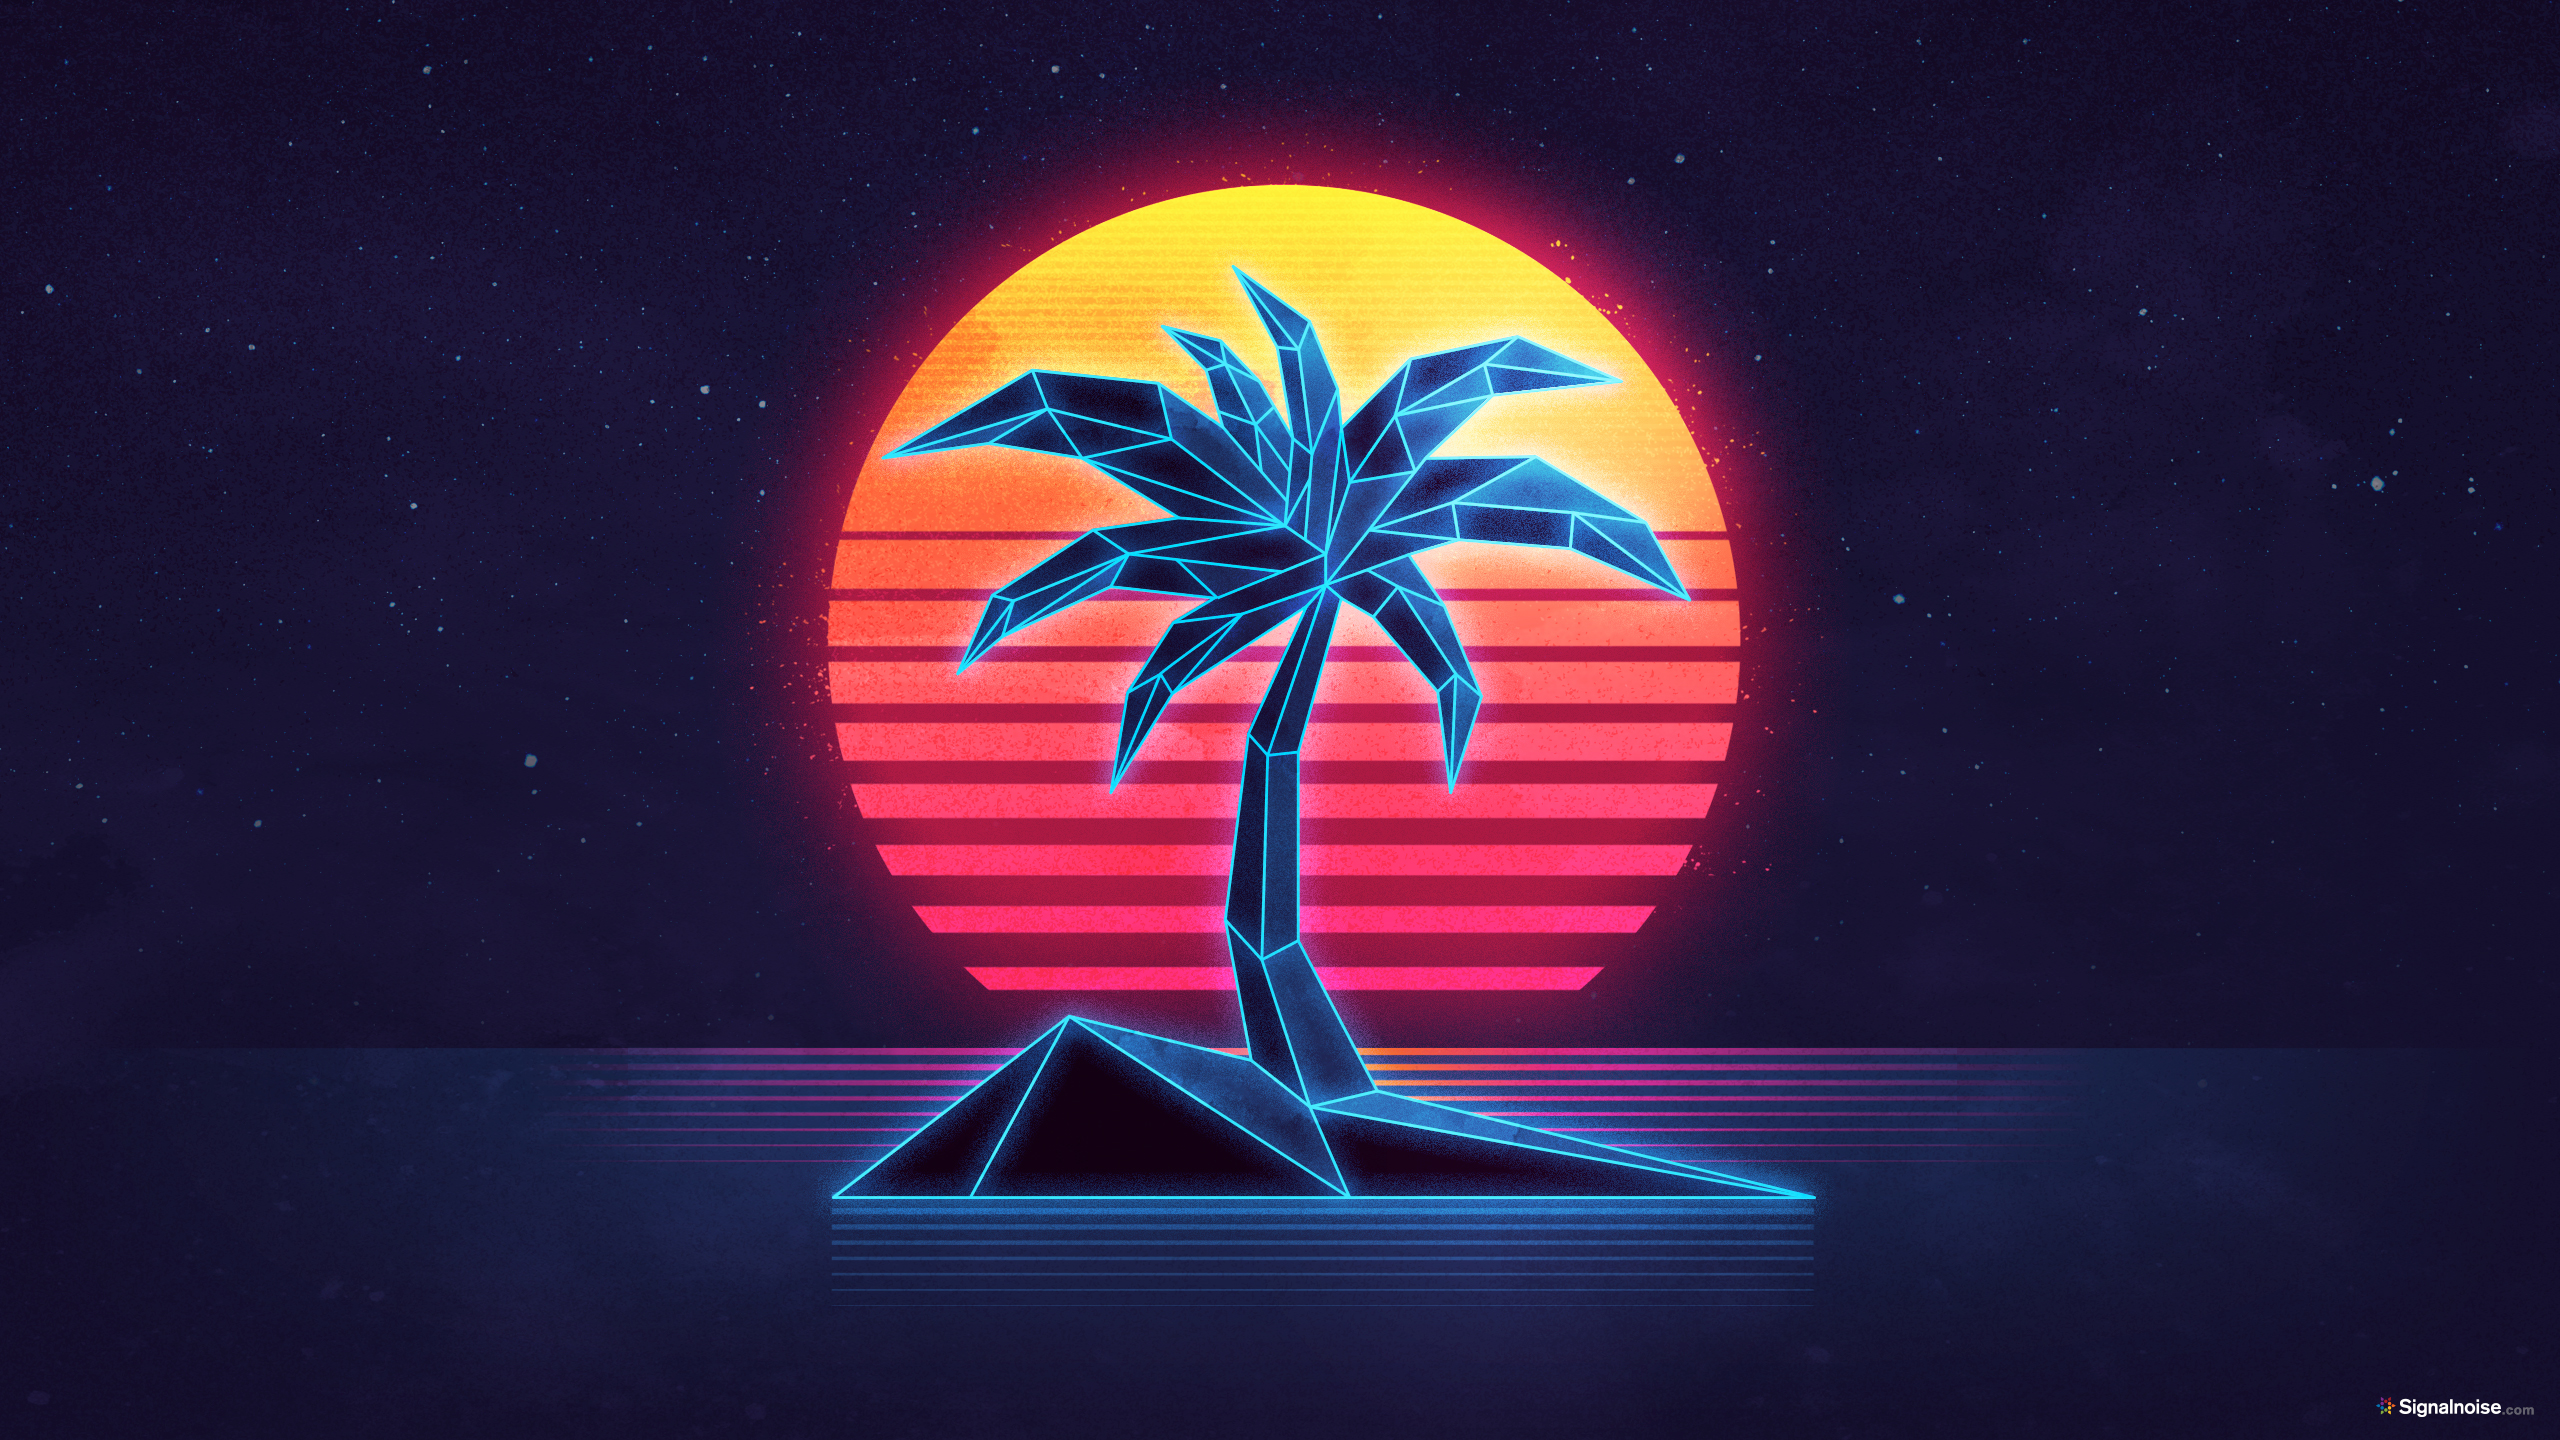 1920 Car Synthwave Wallpaper Signalnoise The Work Of James White